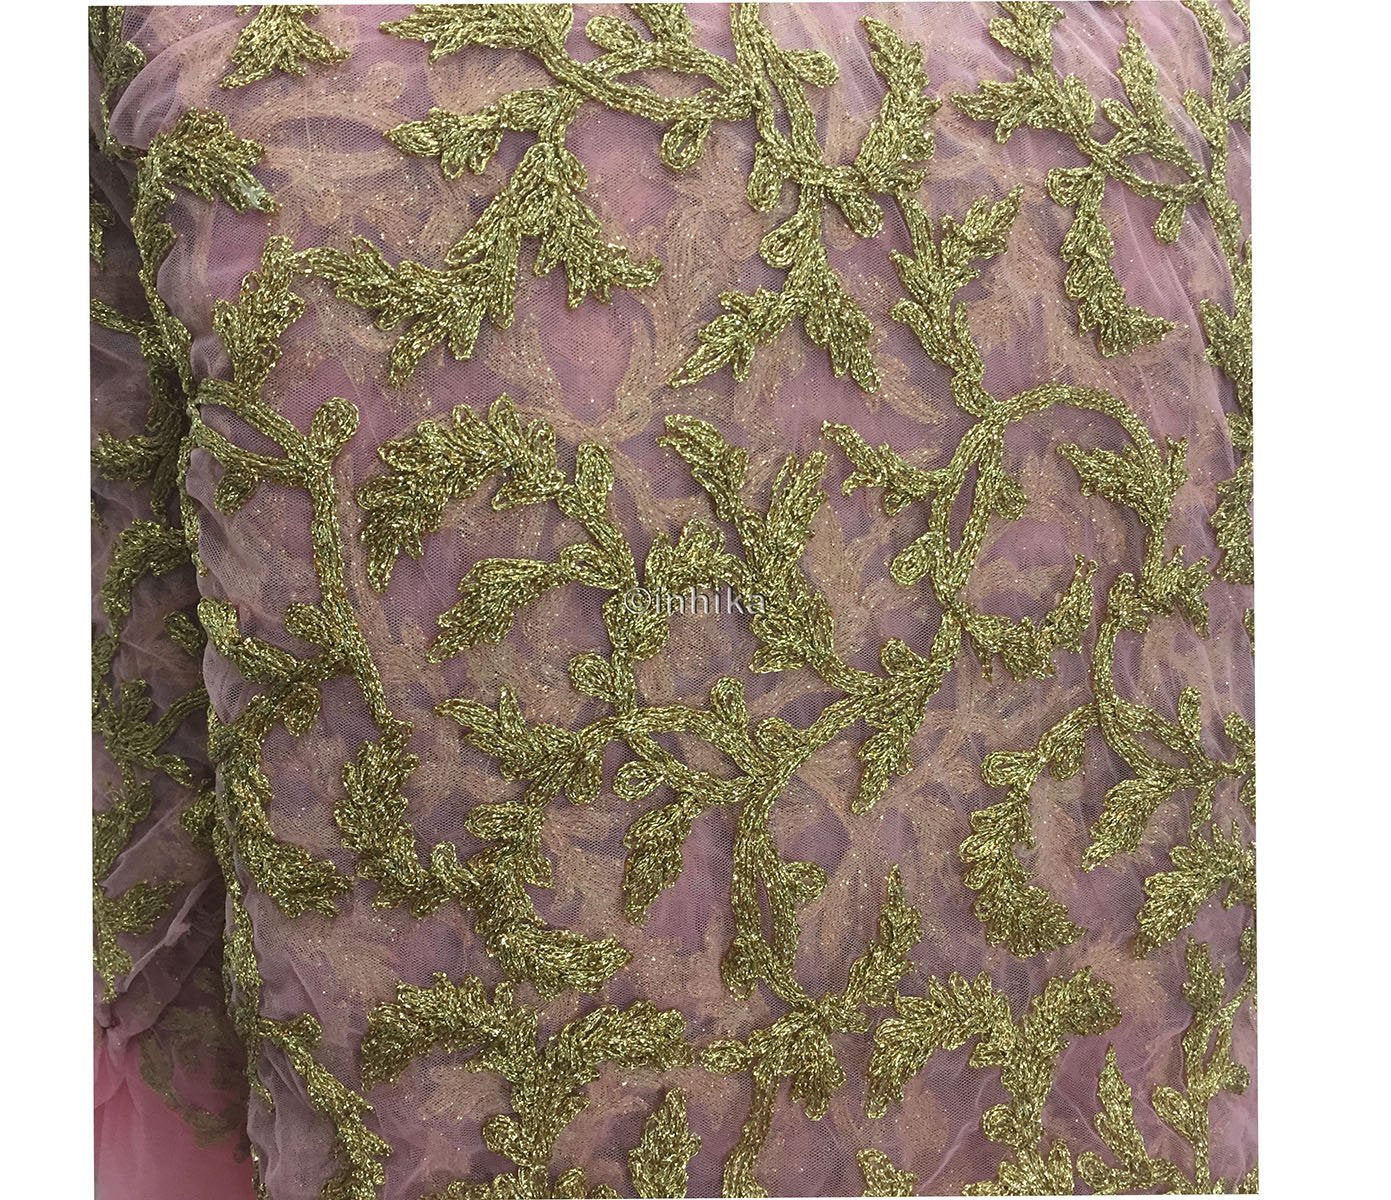 embroidery fabric online india fabric online india Embroidery Net, Mesh, Tulle Pink 44 inches Wide 9215